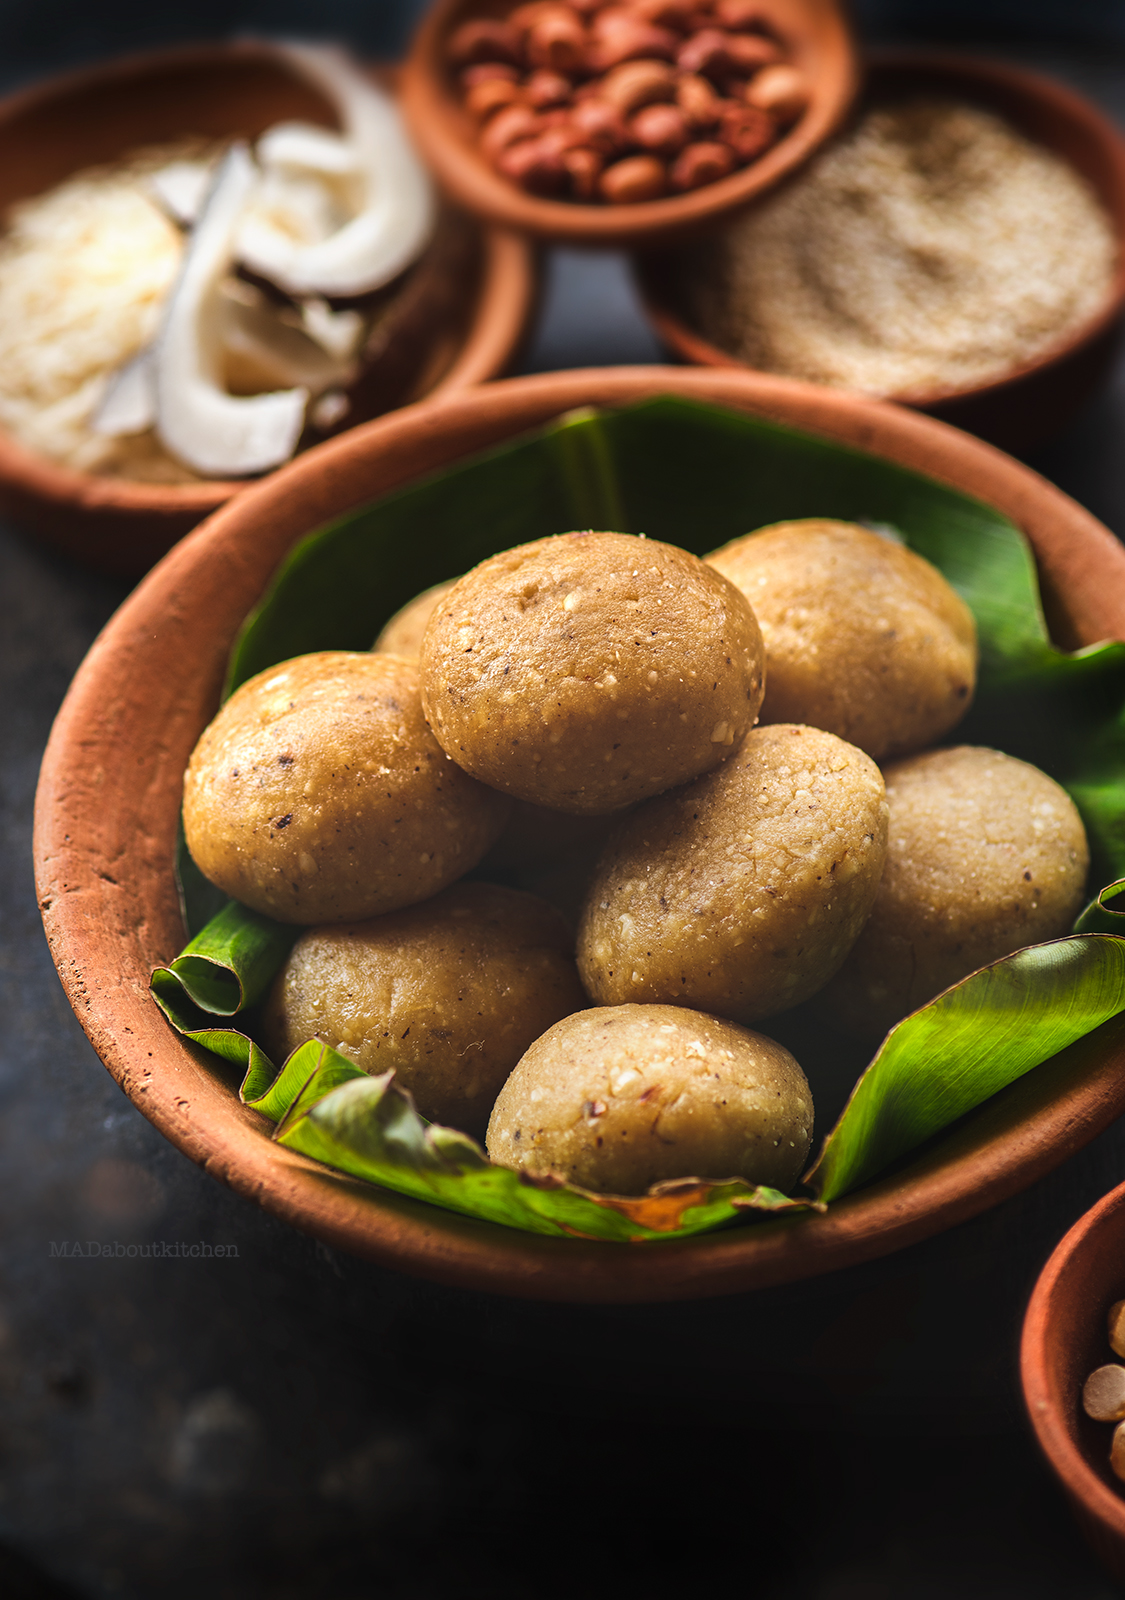 Tambittu or Akki tambittu is a rice preparation with jaggery and nuts and is offered to the god by making lamps out of them & are then served as prasada.